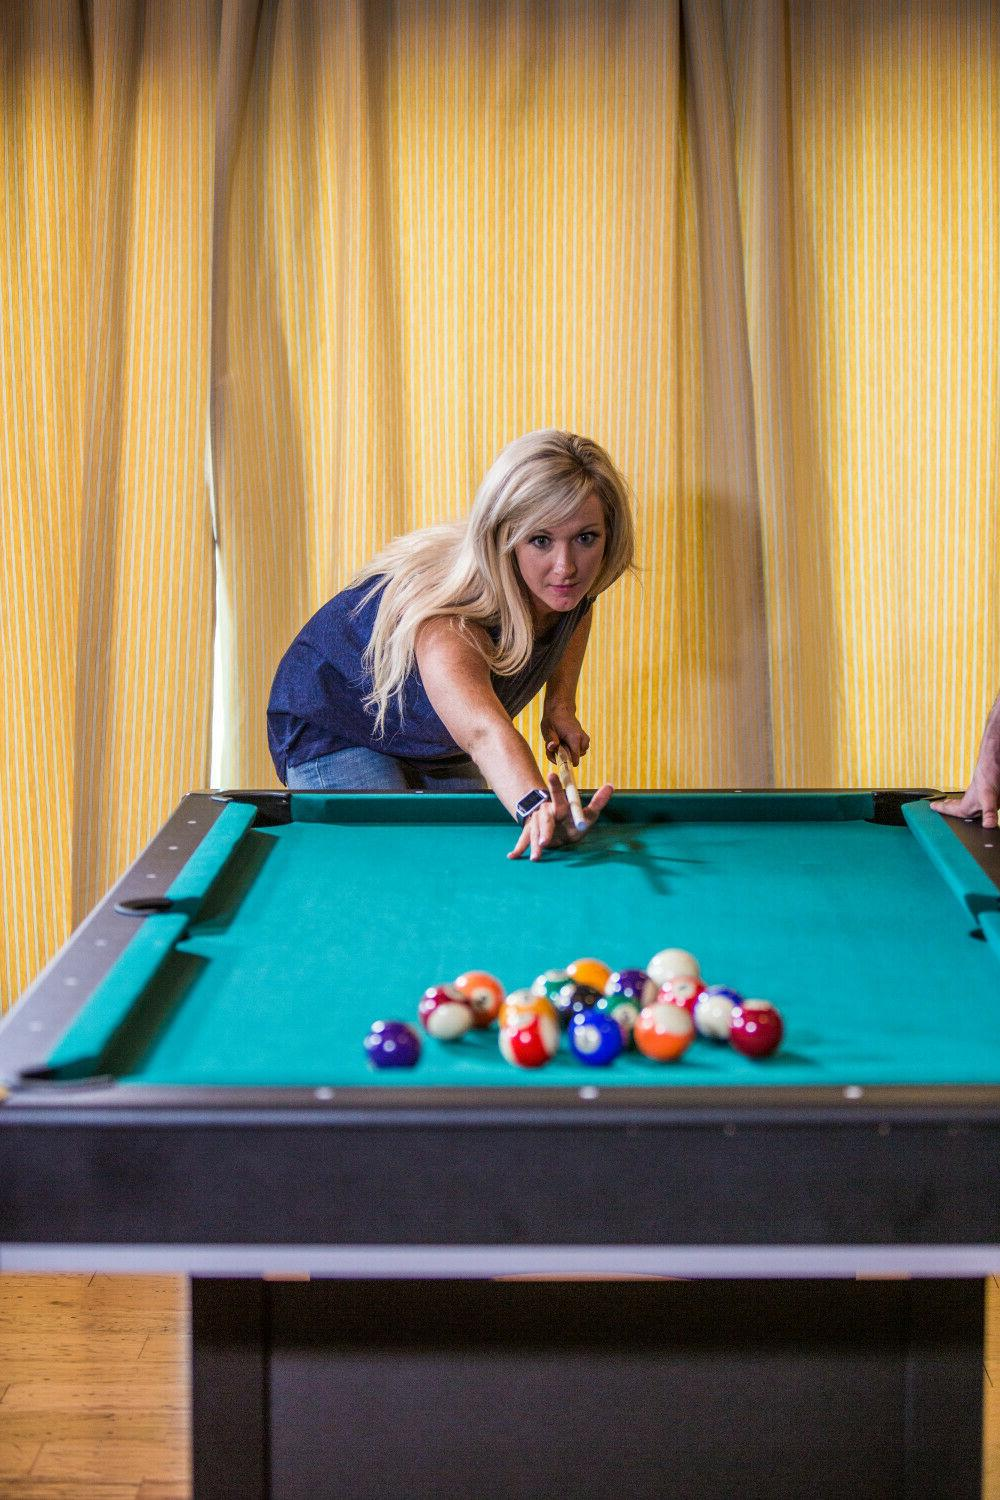 Pool Table Billiards With Tennis